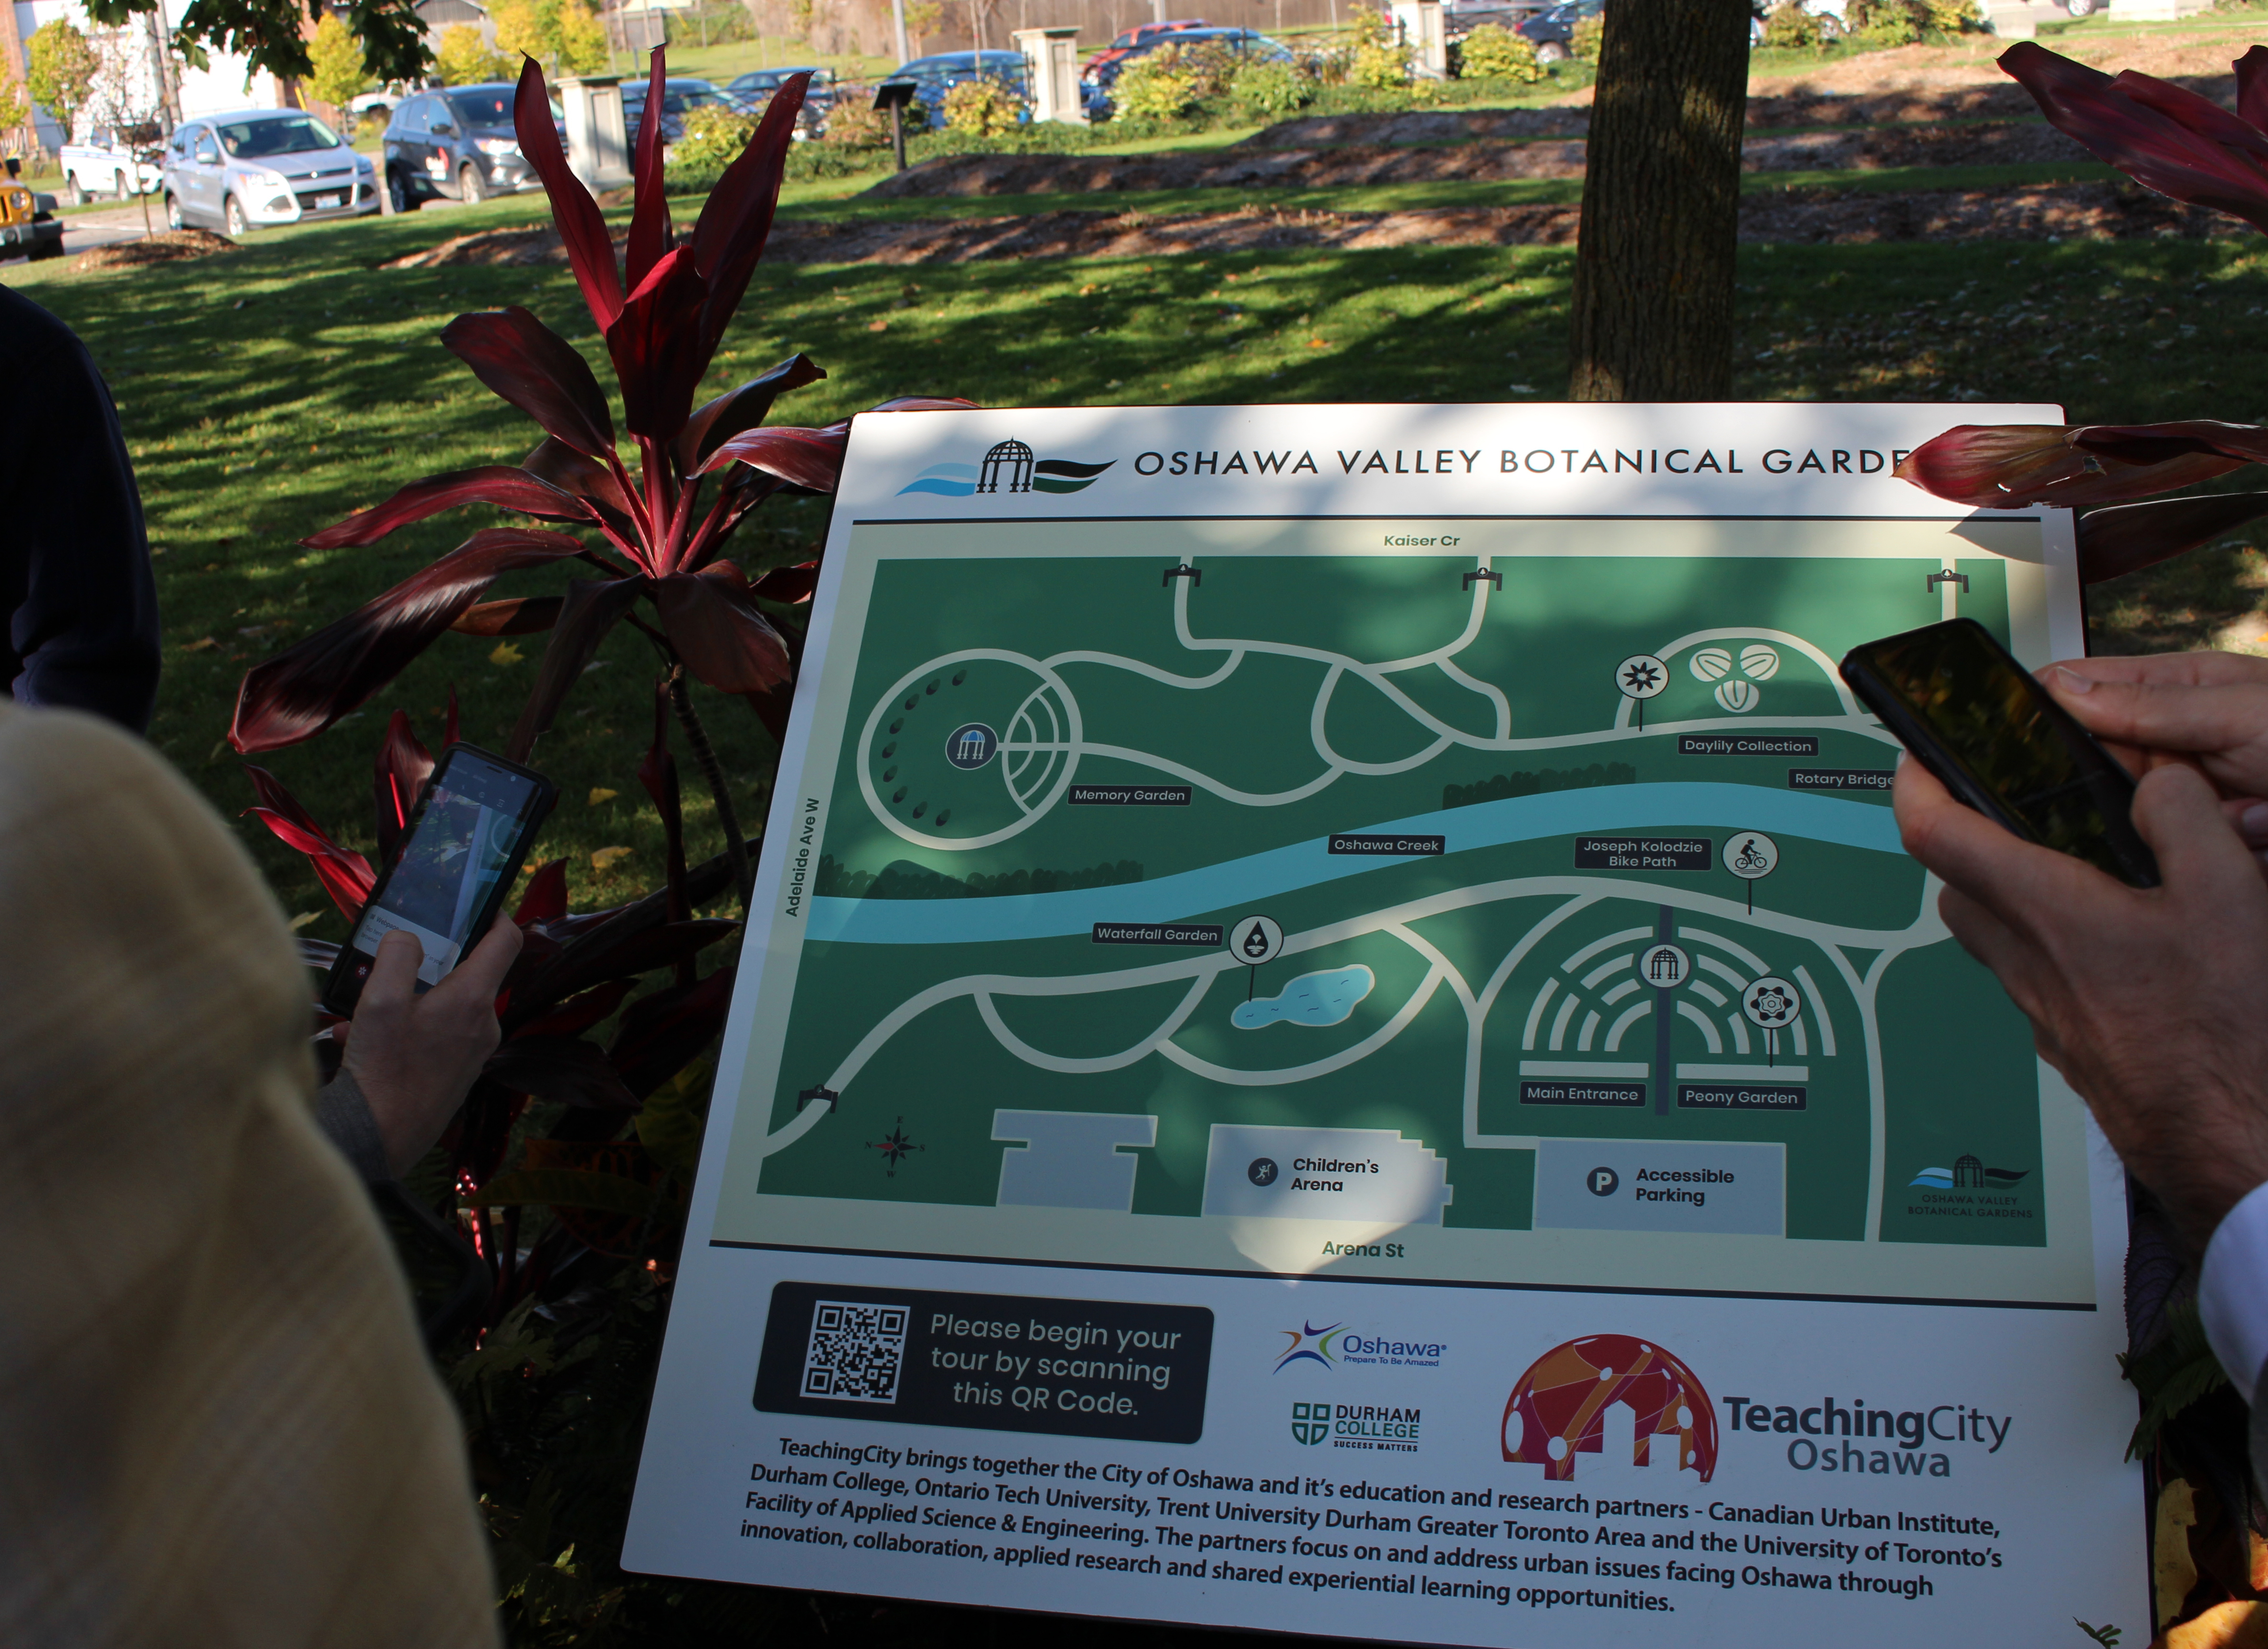 Signs are located throughout the Oshawa Valley Botanical Gardens and feature Quick Response (QR) codes for visitors to learn about the park, points of interest and utilize a navigation guide between landmarks.